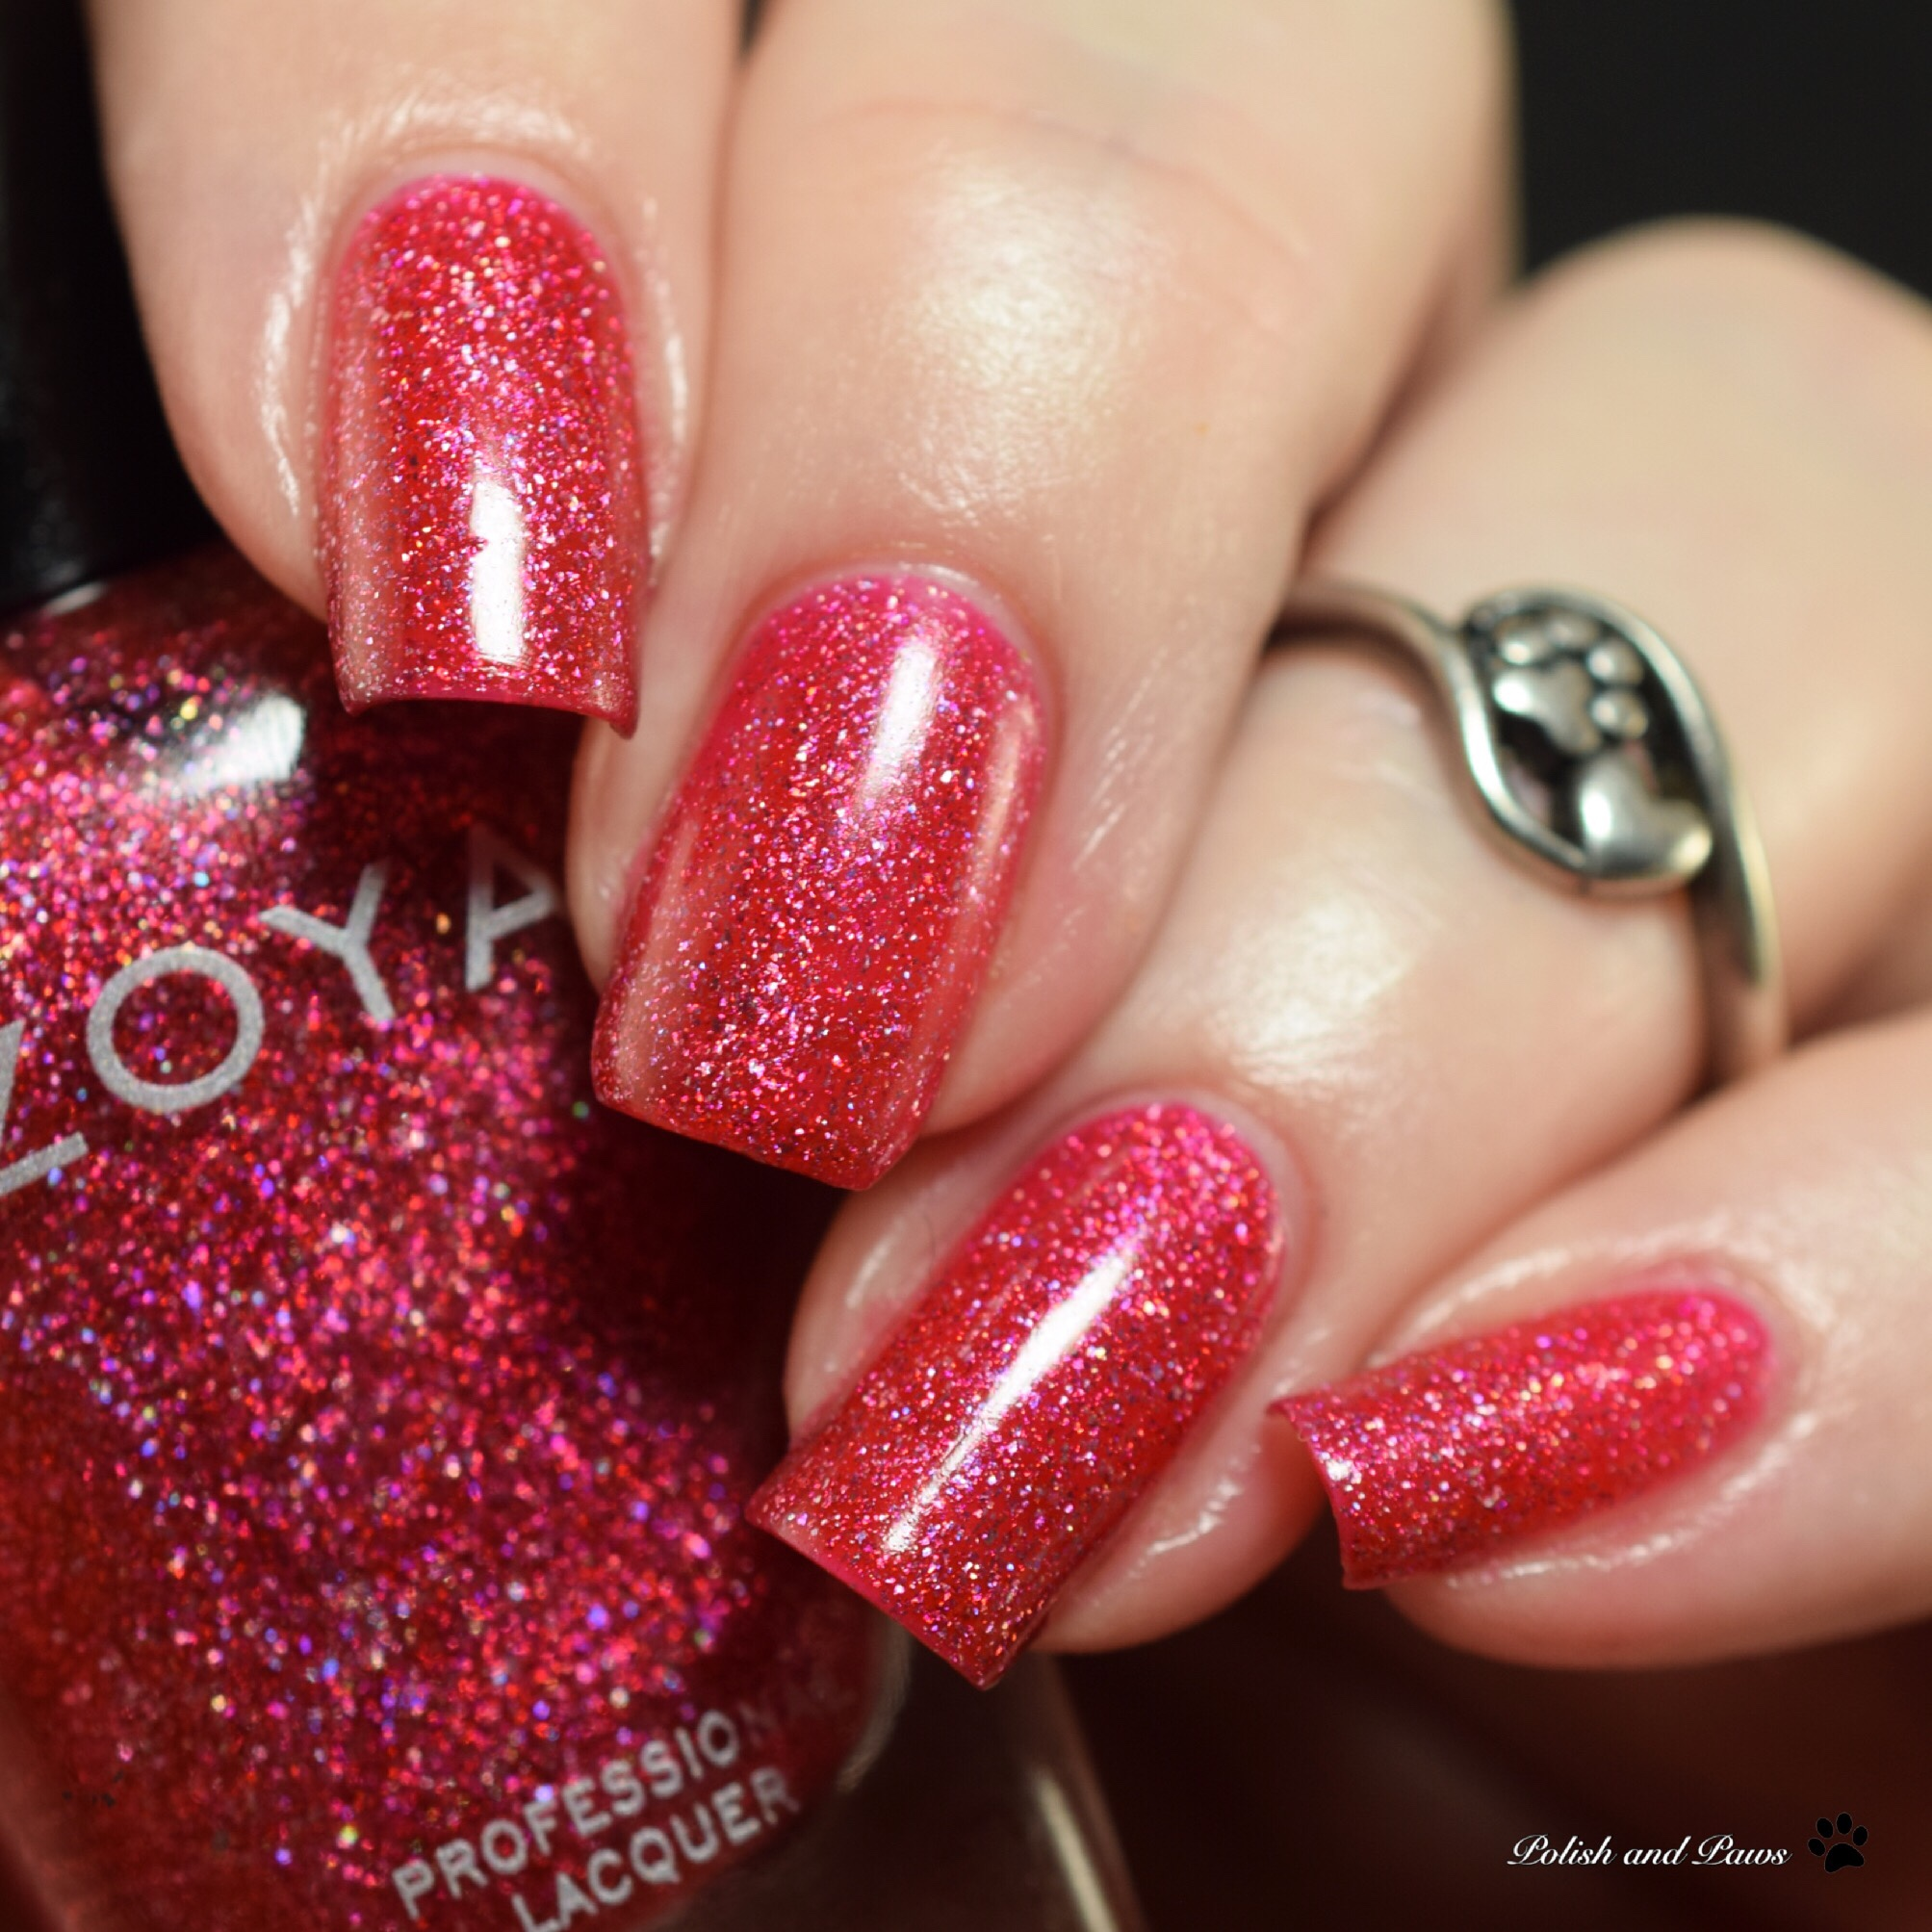 Zoya Everly